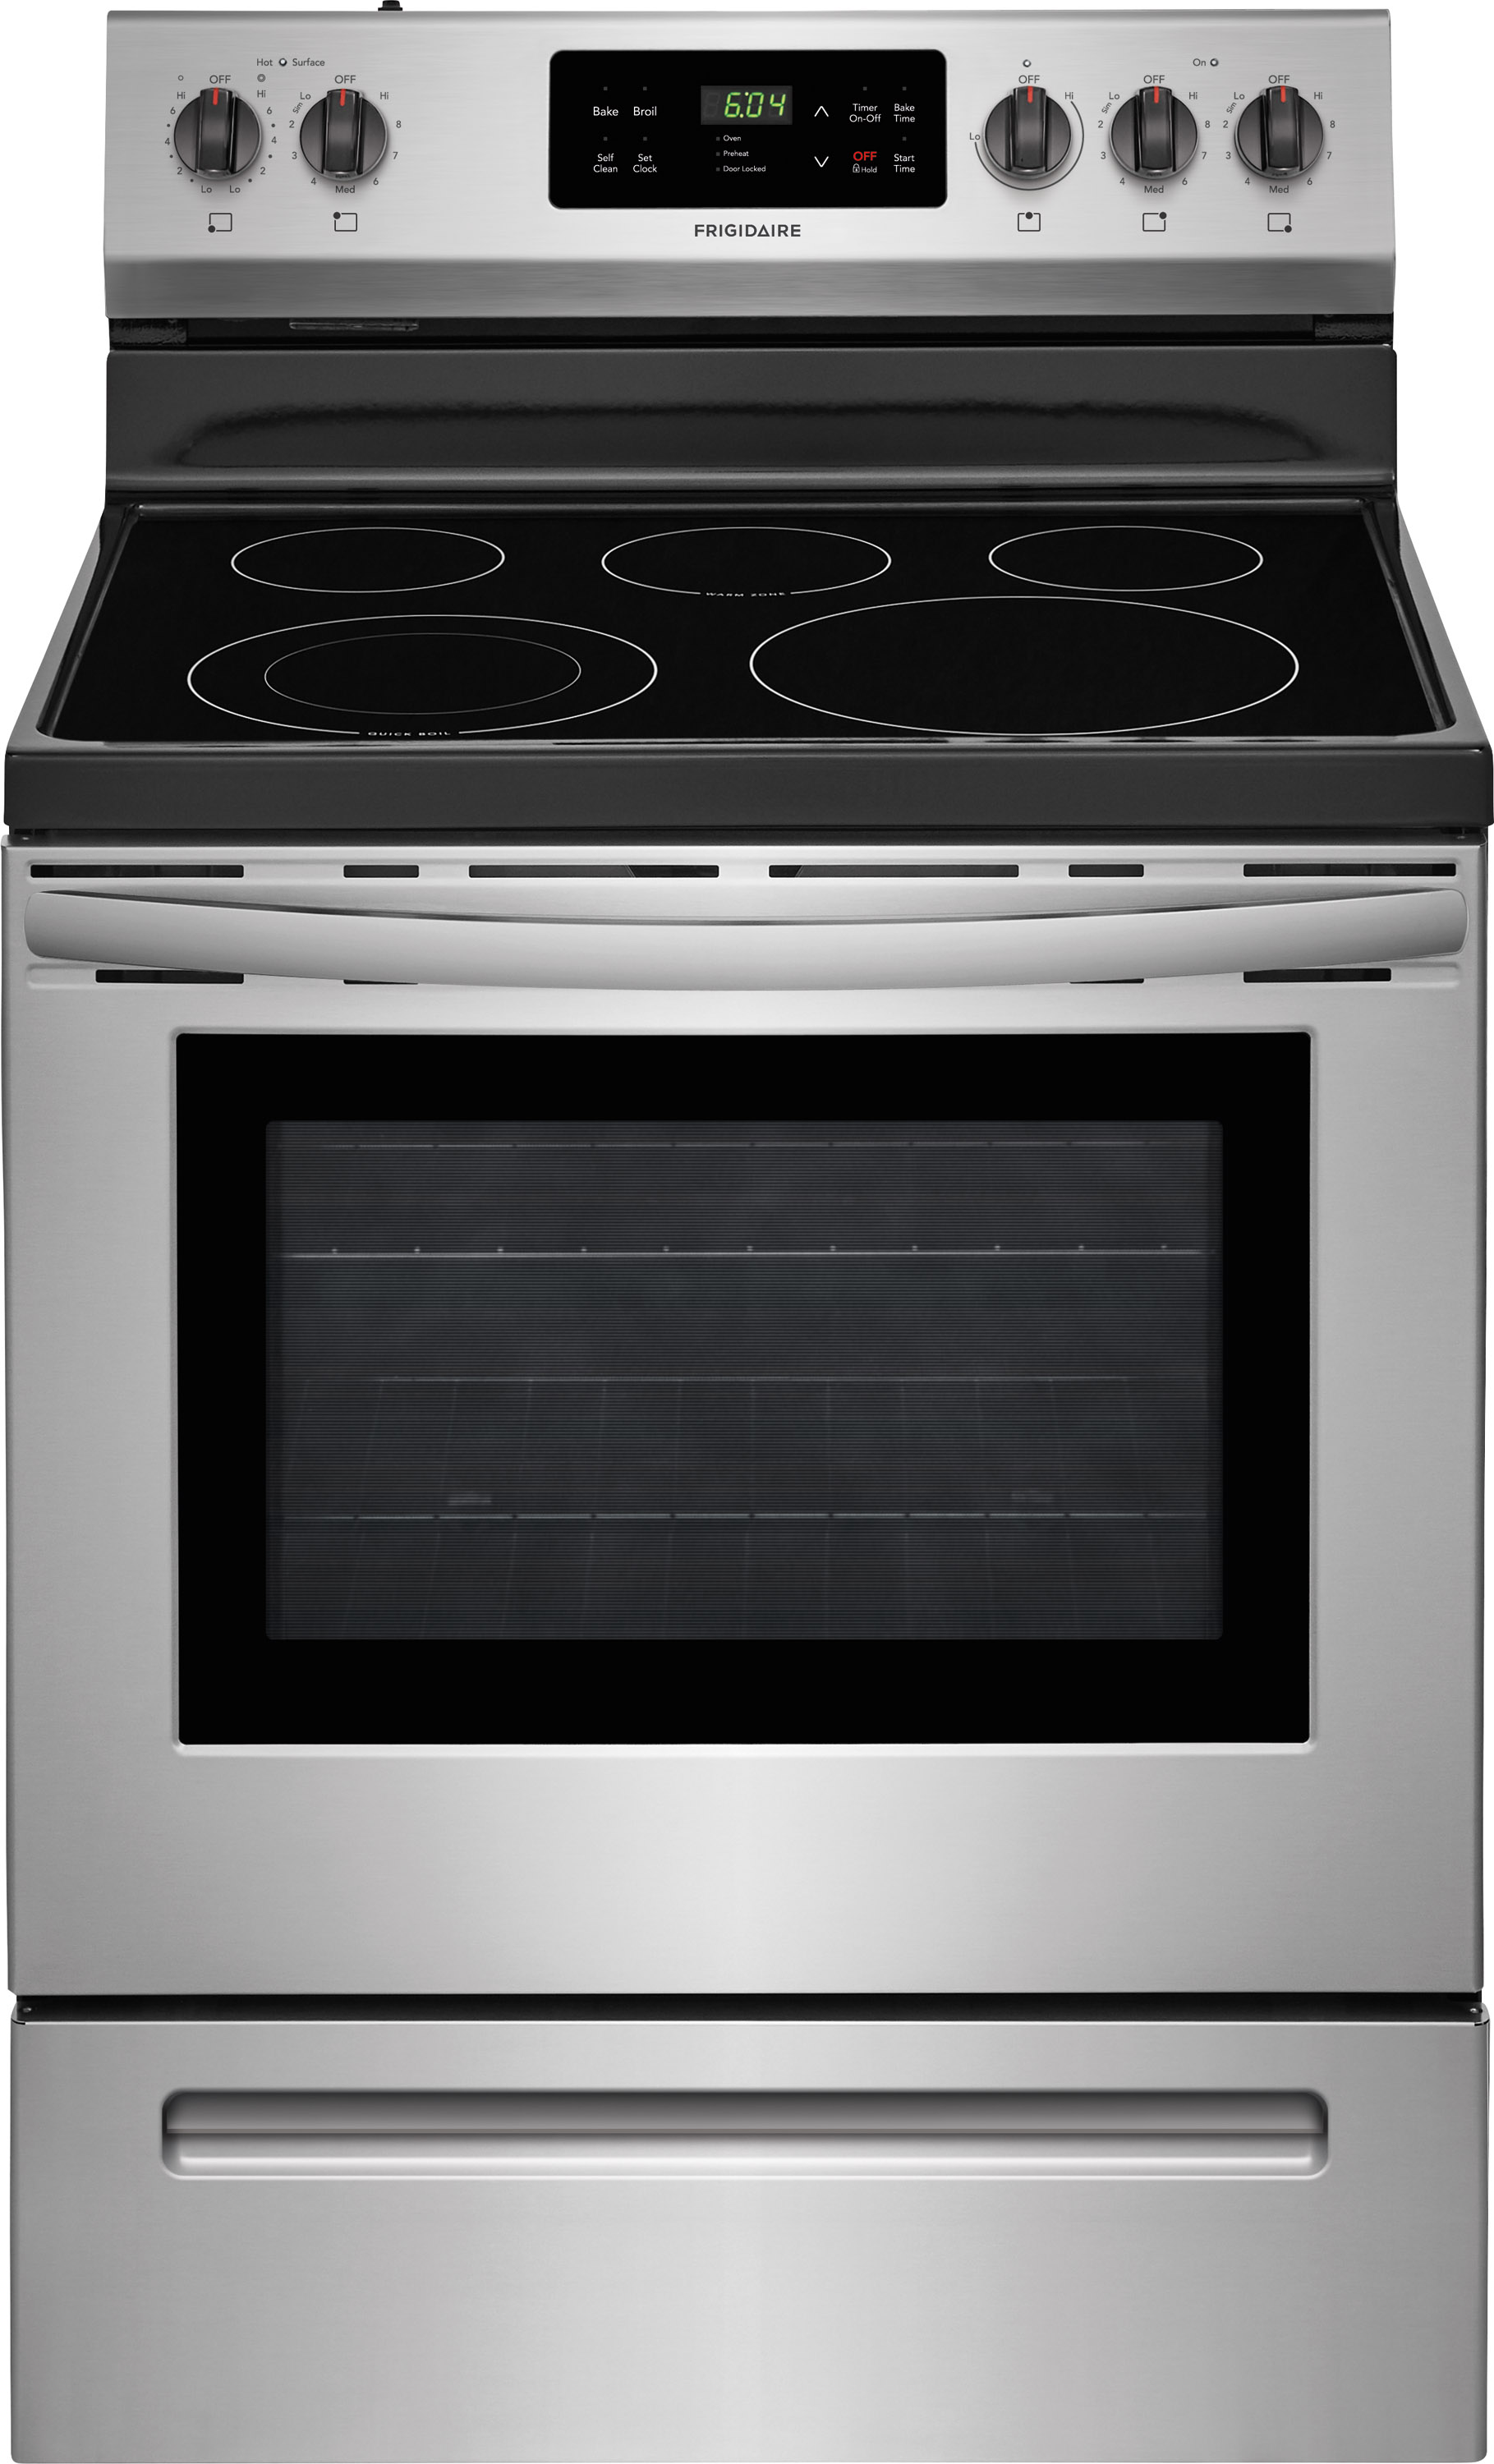 hight resolution of a jenn air cooktop wiring